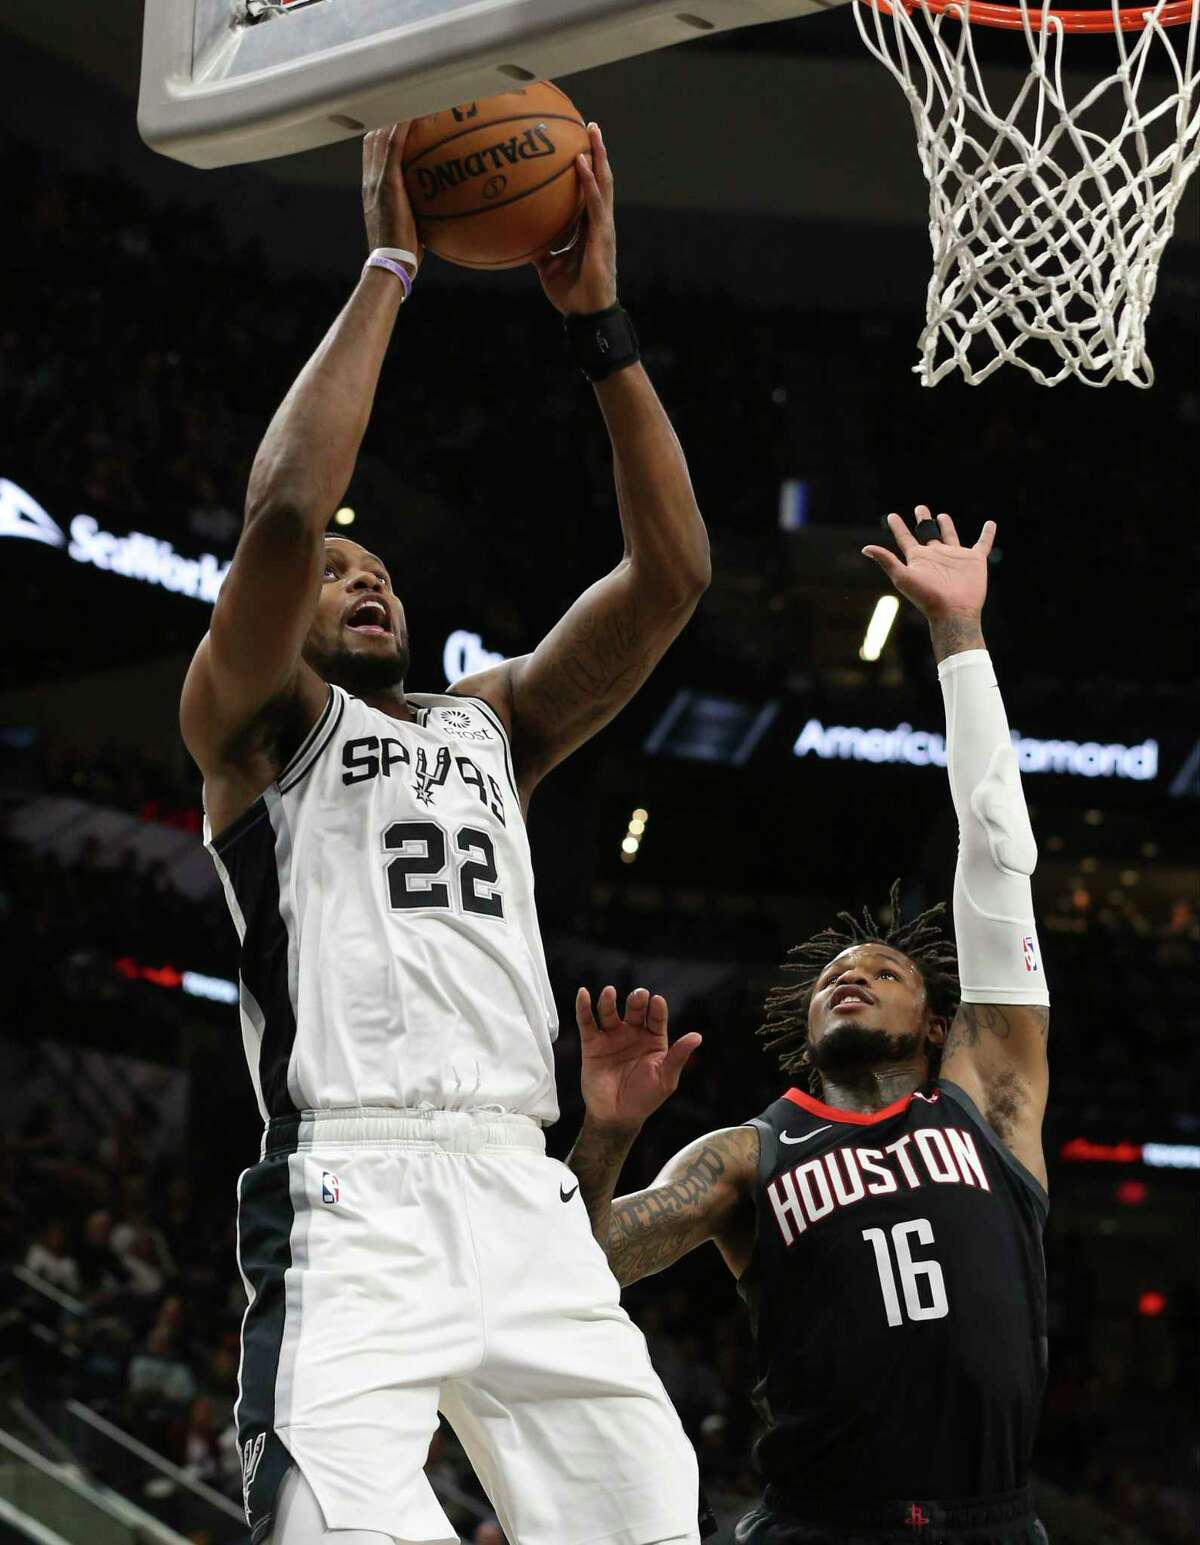 Spurs' Rudy Gay (22) scores against Houston Rockets' Ben McLemore (16) during their game at the AT&T Center on Tuesday, Dec. 3, 2019.